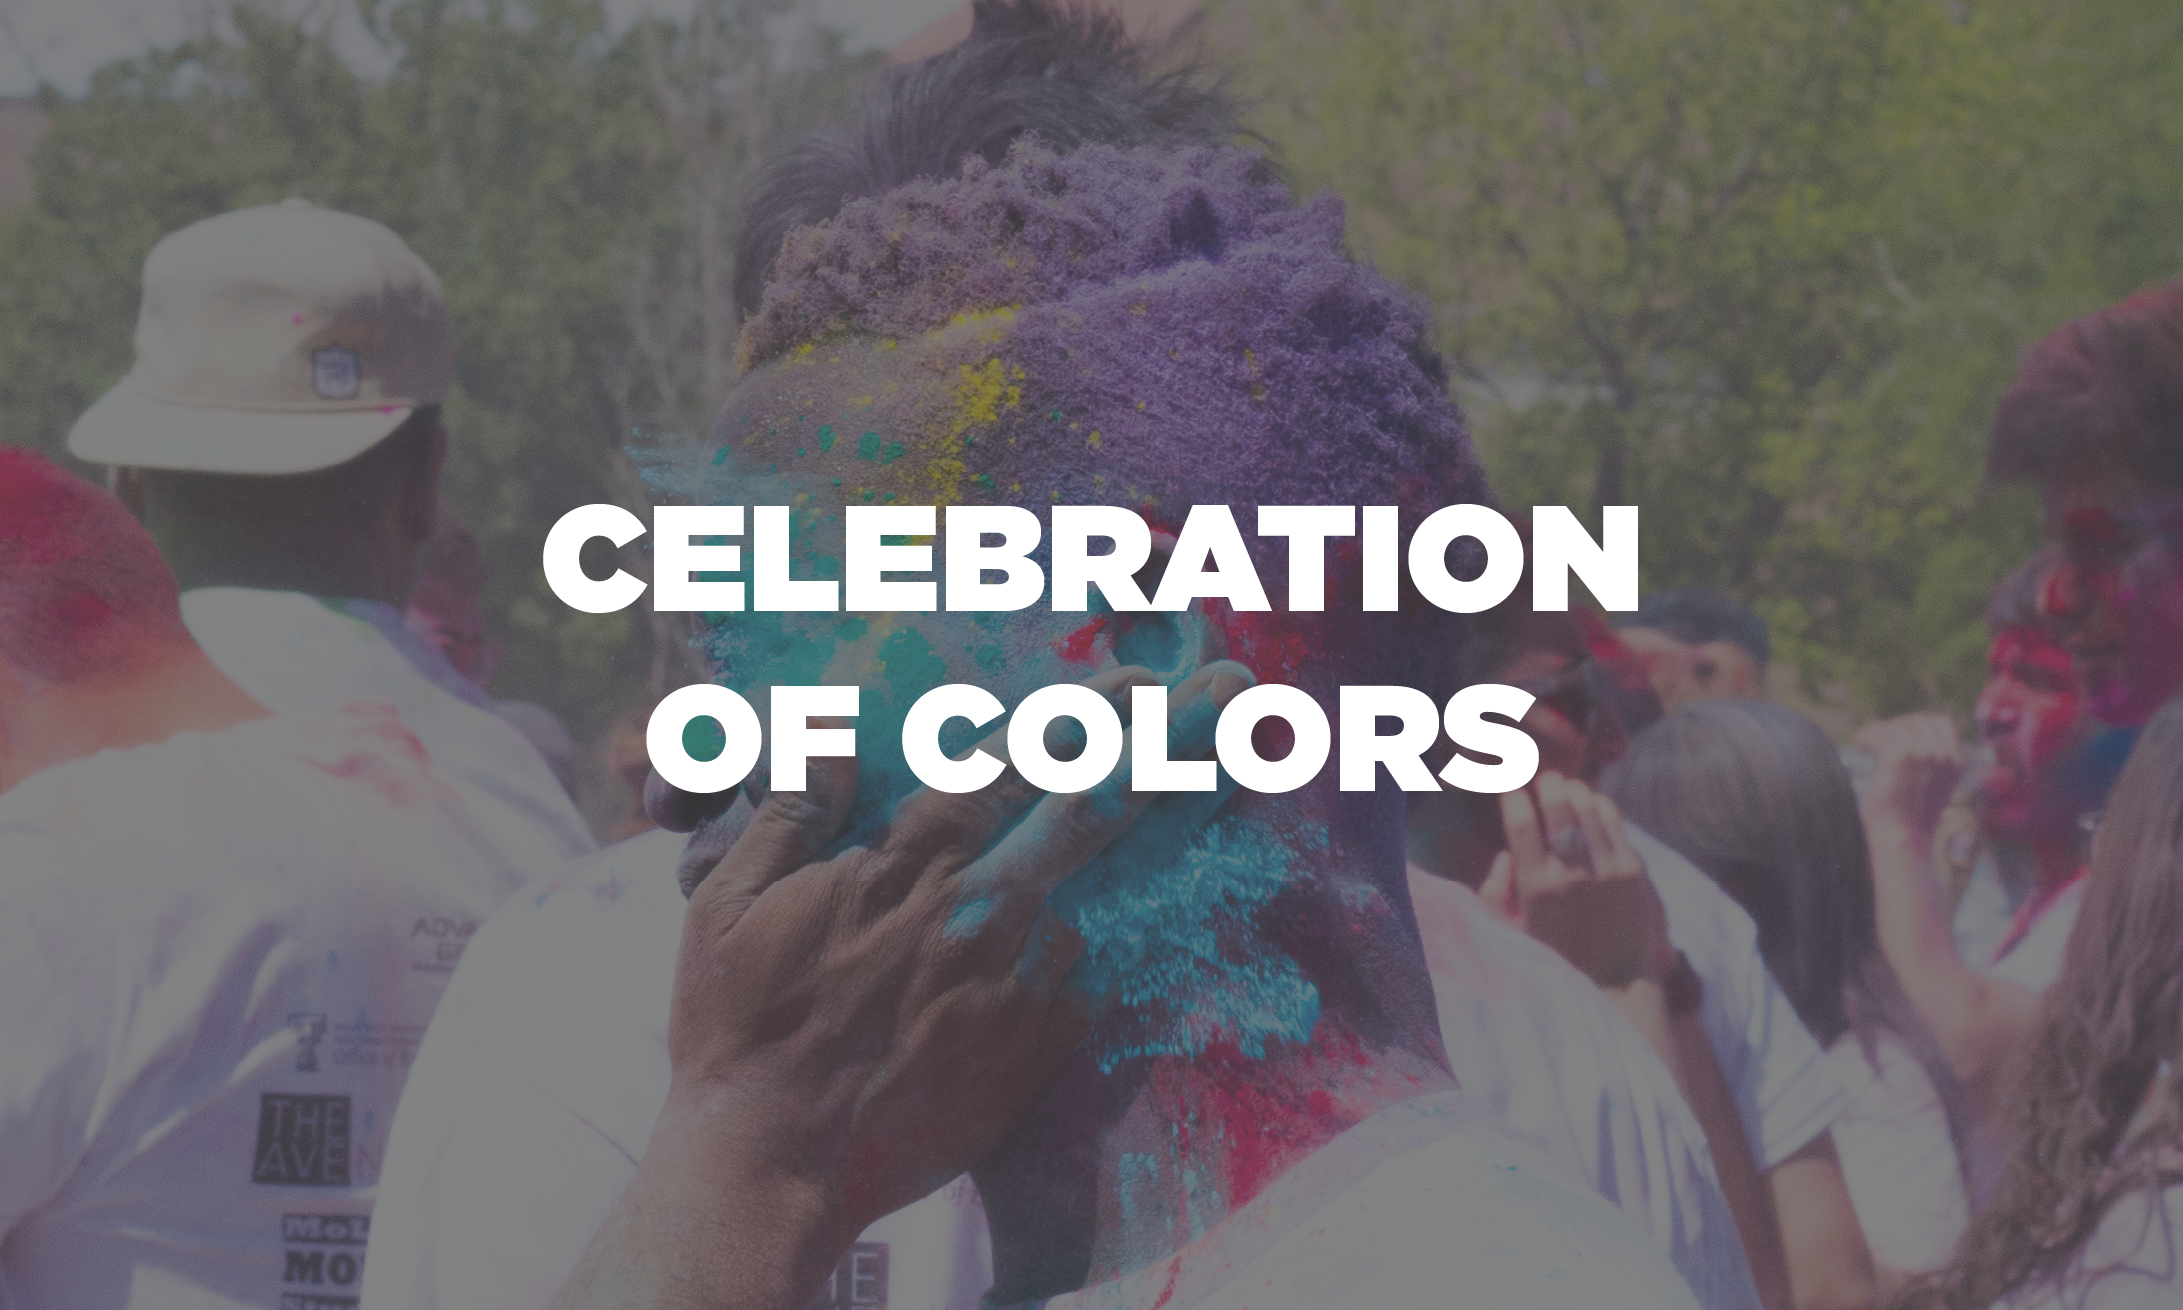 Celebration of Colors